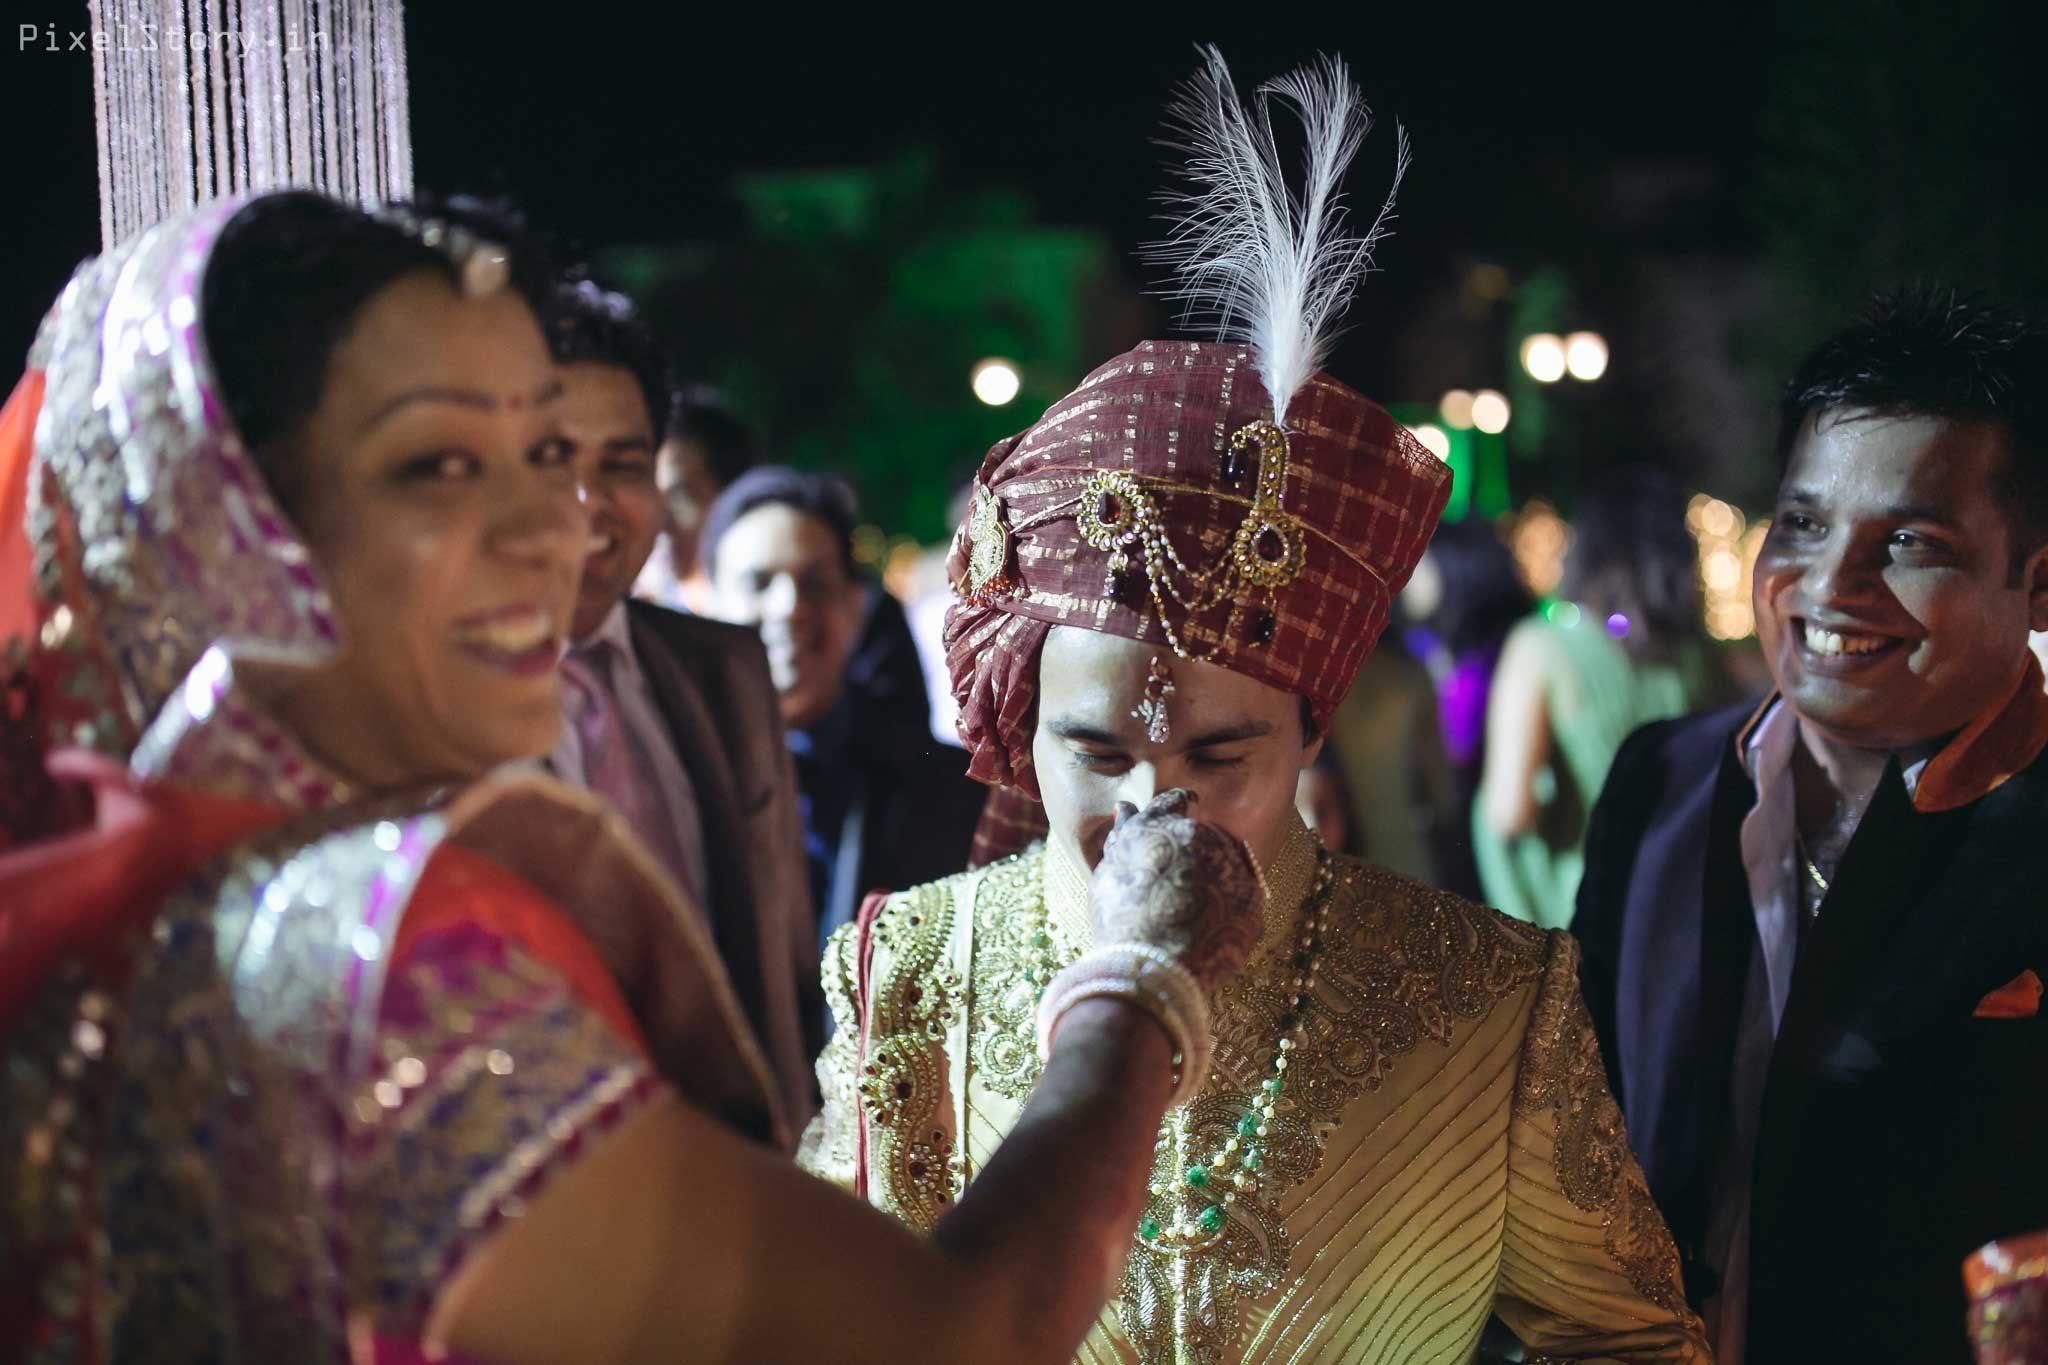 Real Indian Weddings A Stunning Arranged Marriage Filled With Love